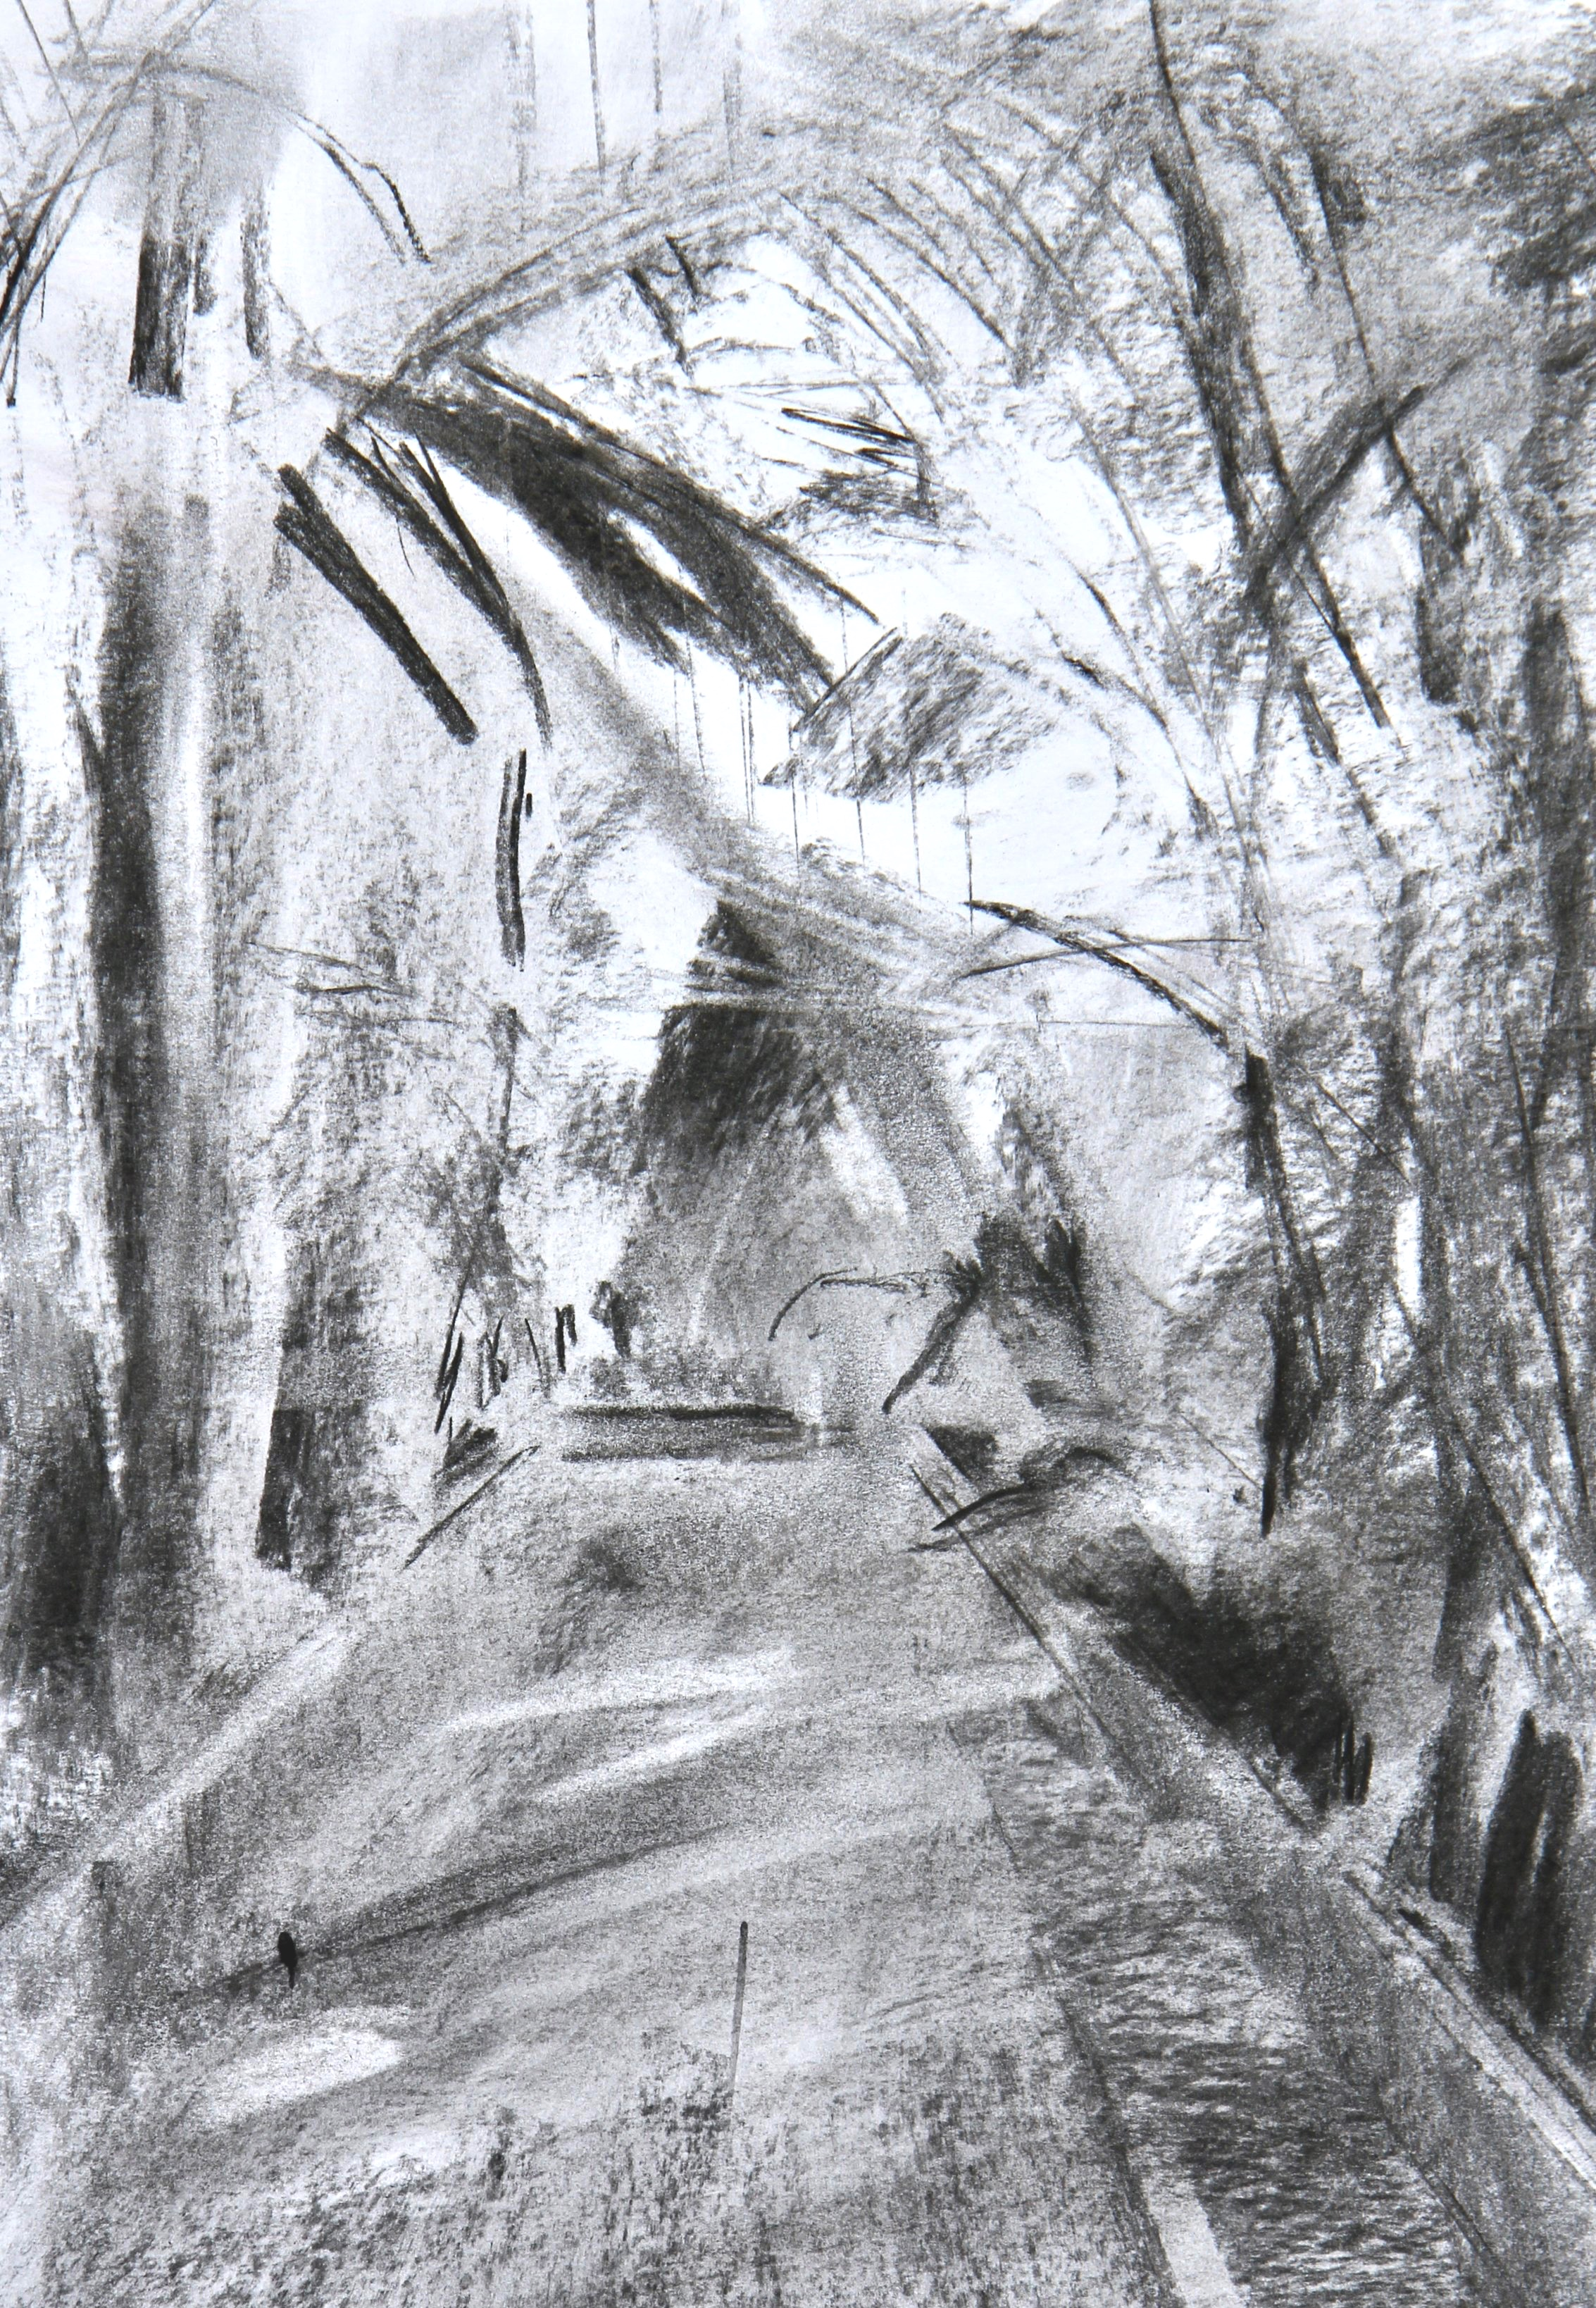 Palm House sketch - 25 x 35cm, charcoal on paper. Mounted on acid-free board £215